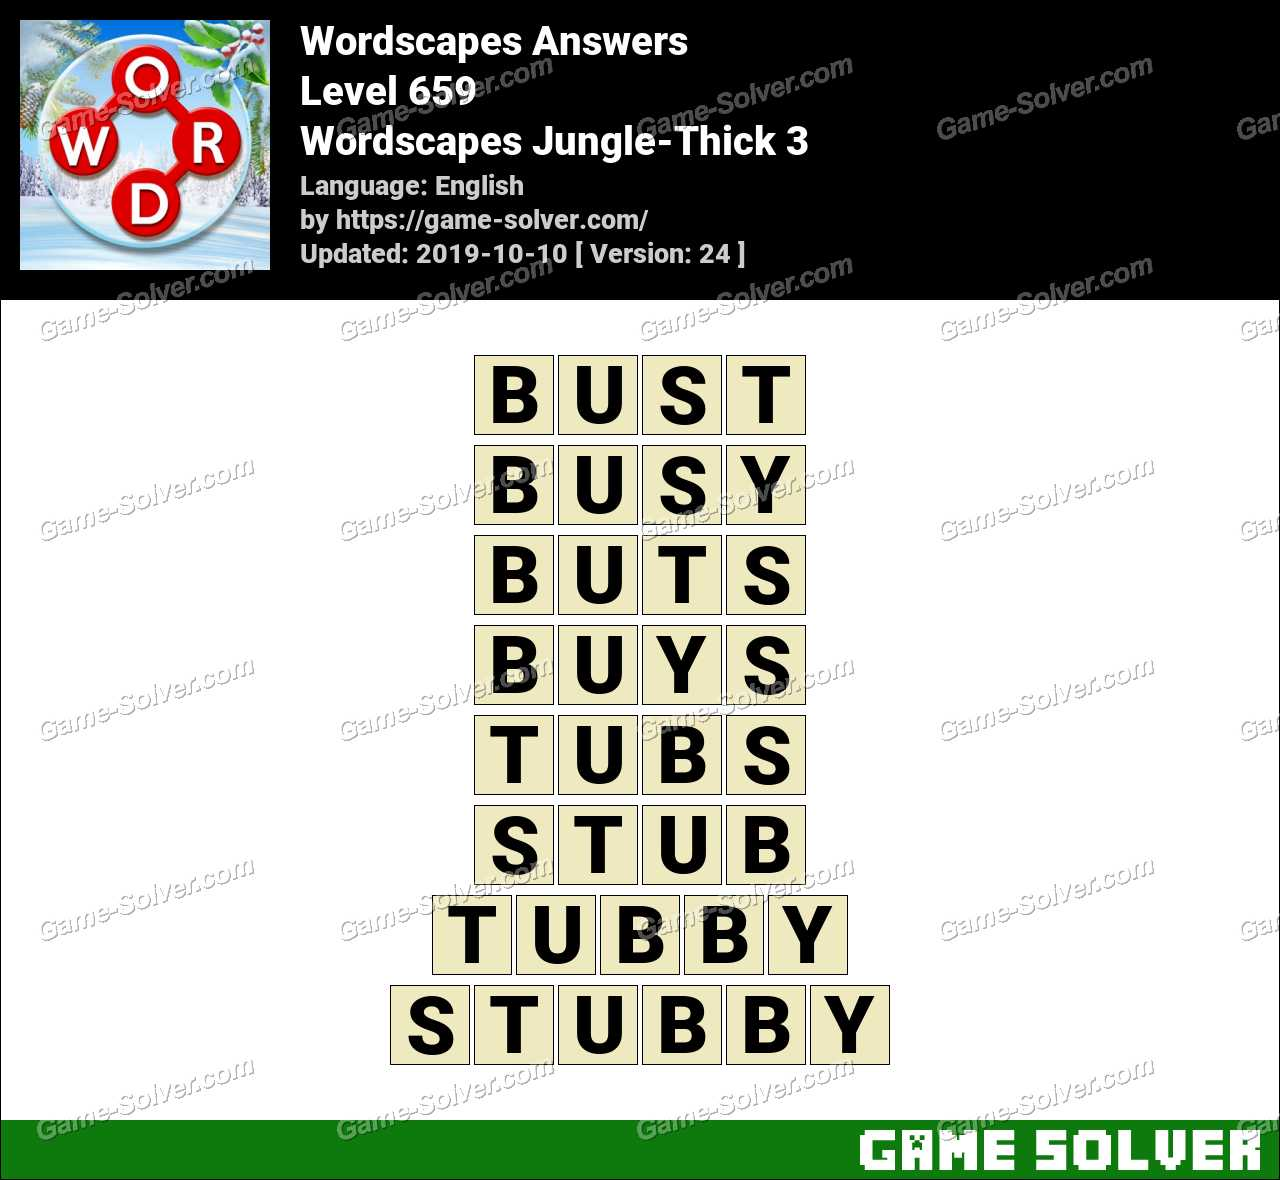 Wordscapes Jungle-Thick 3 Answers